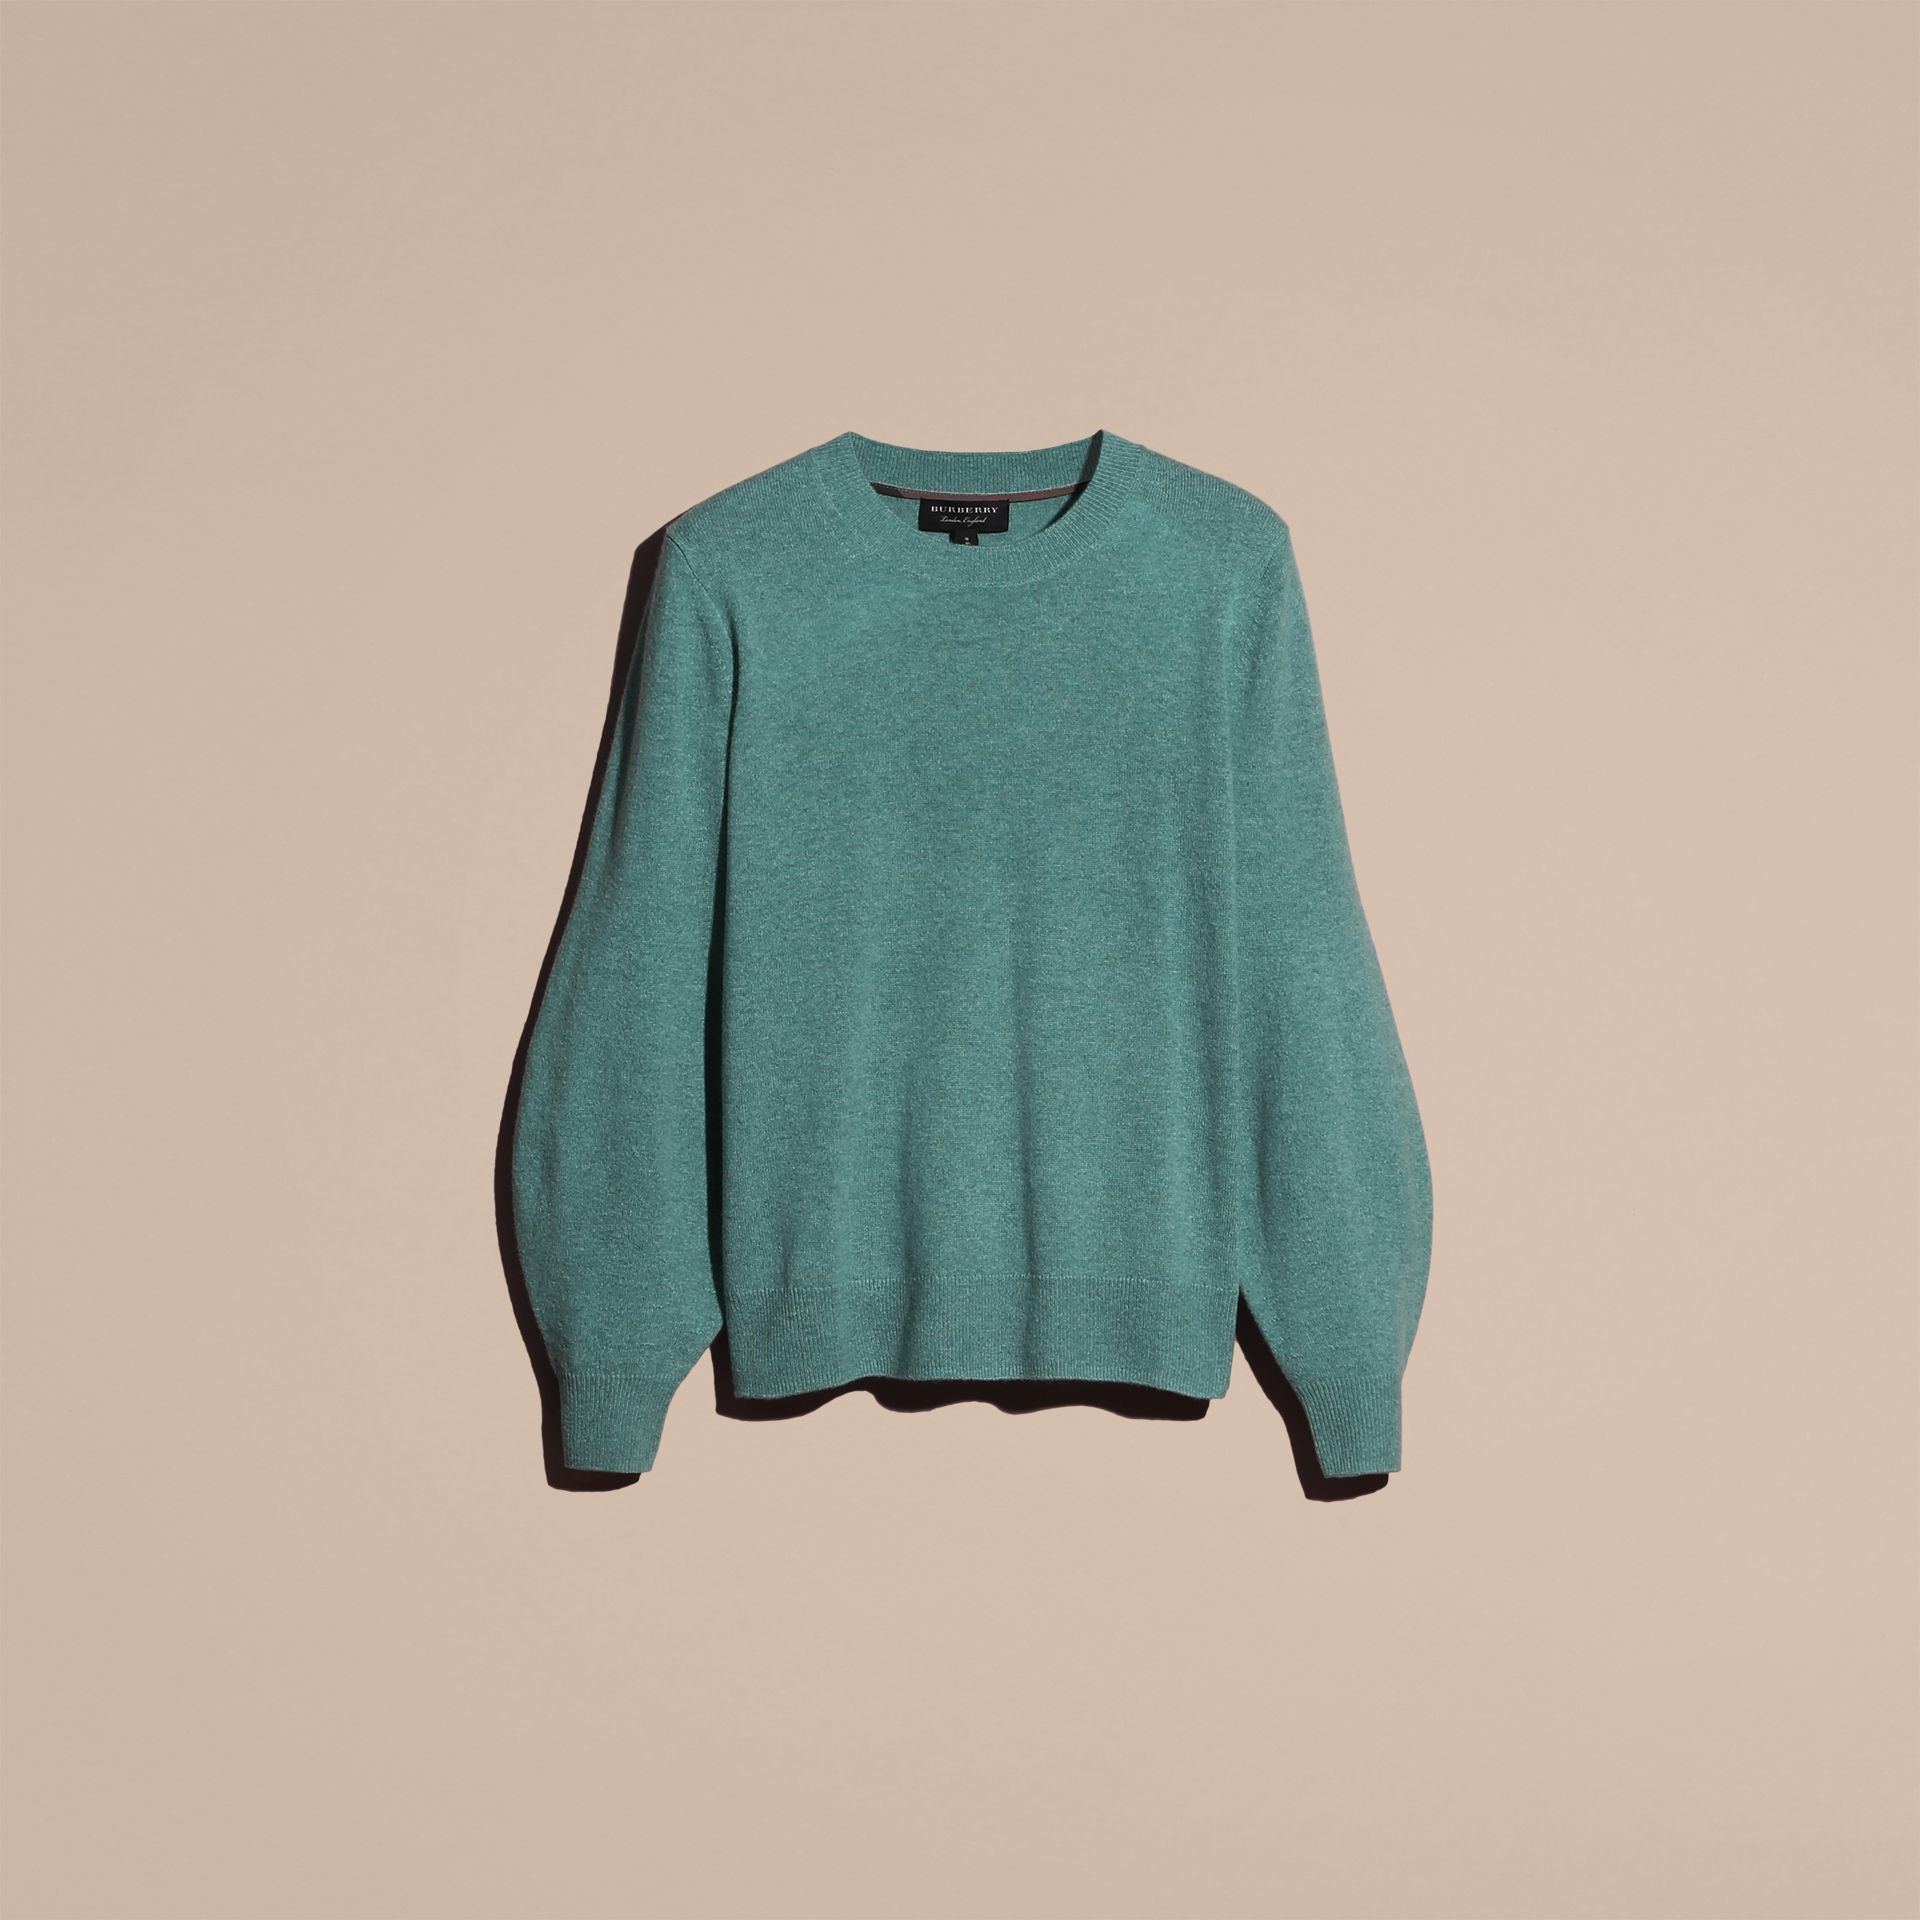 Puff-sleeved Cashmere Sweater in Dusty Teal - gallery image 4